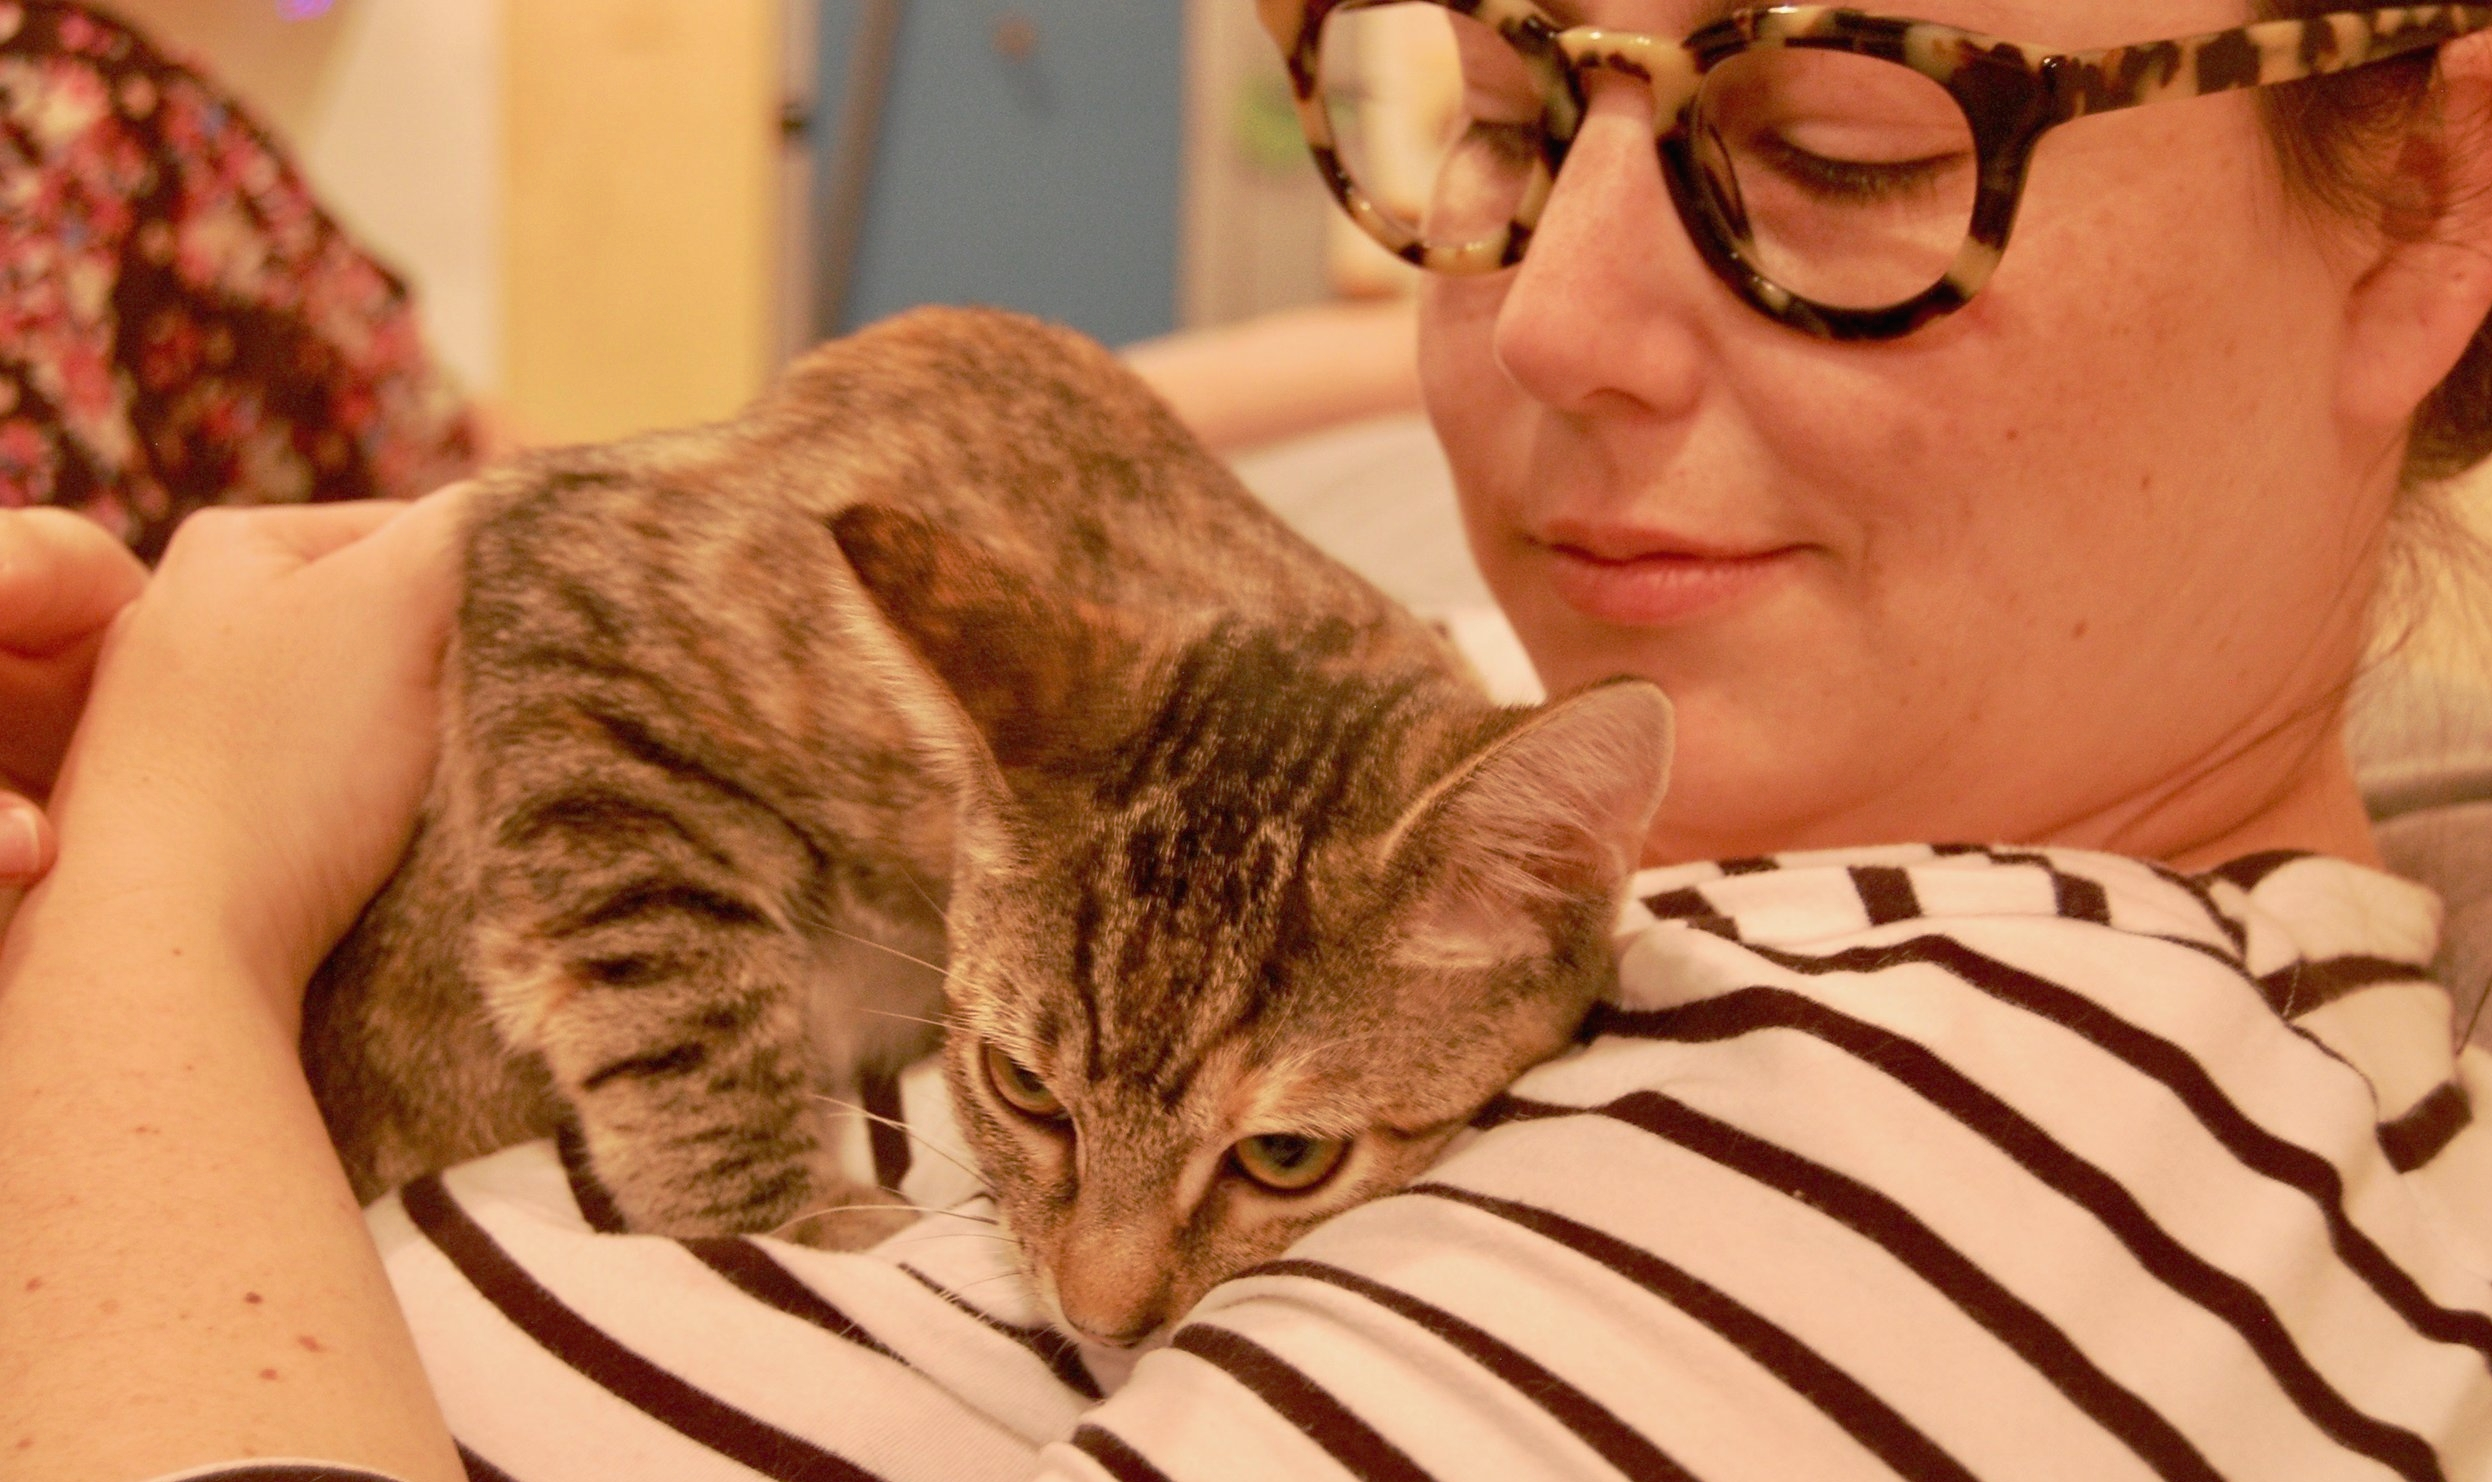 One final snuggle session with Oak before sending her on to her new home. Photo by Cathy Niland.